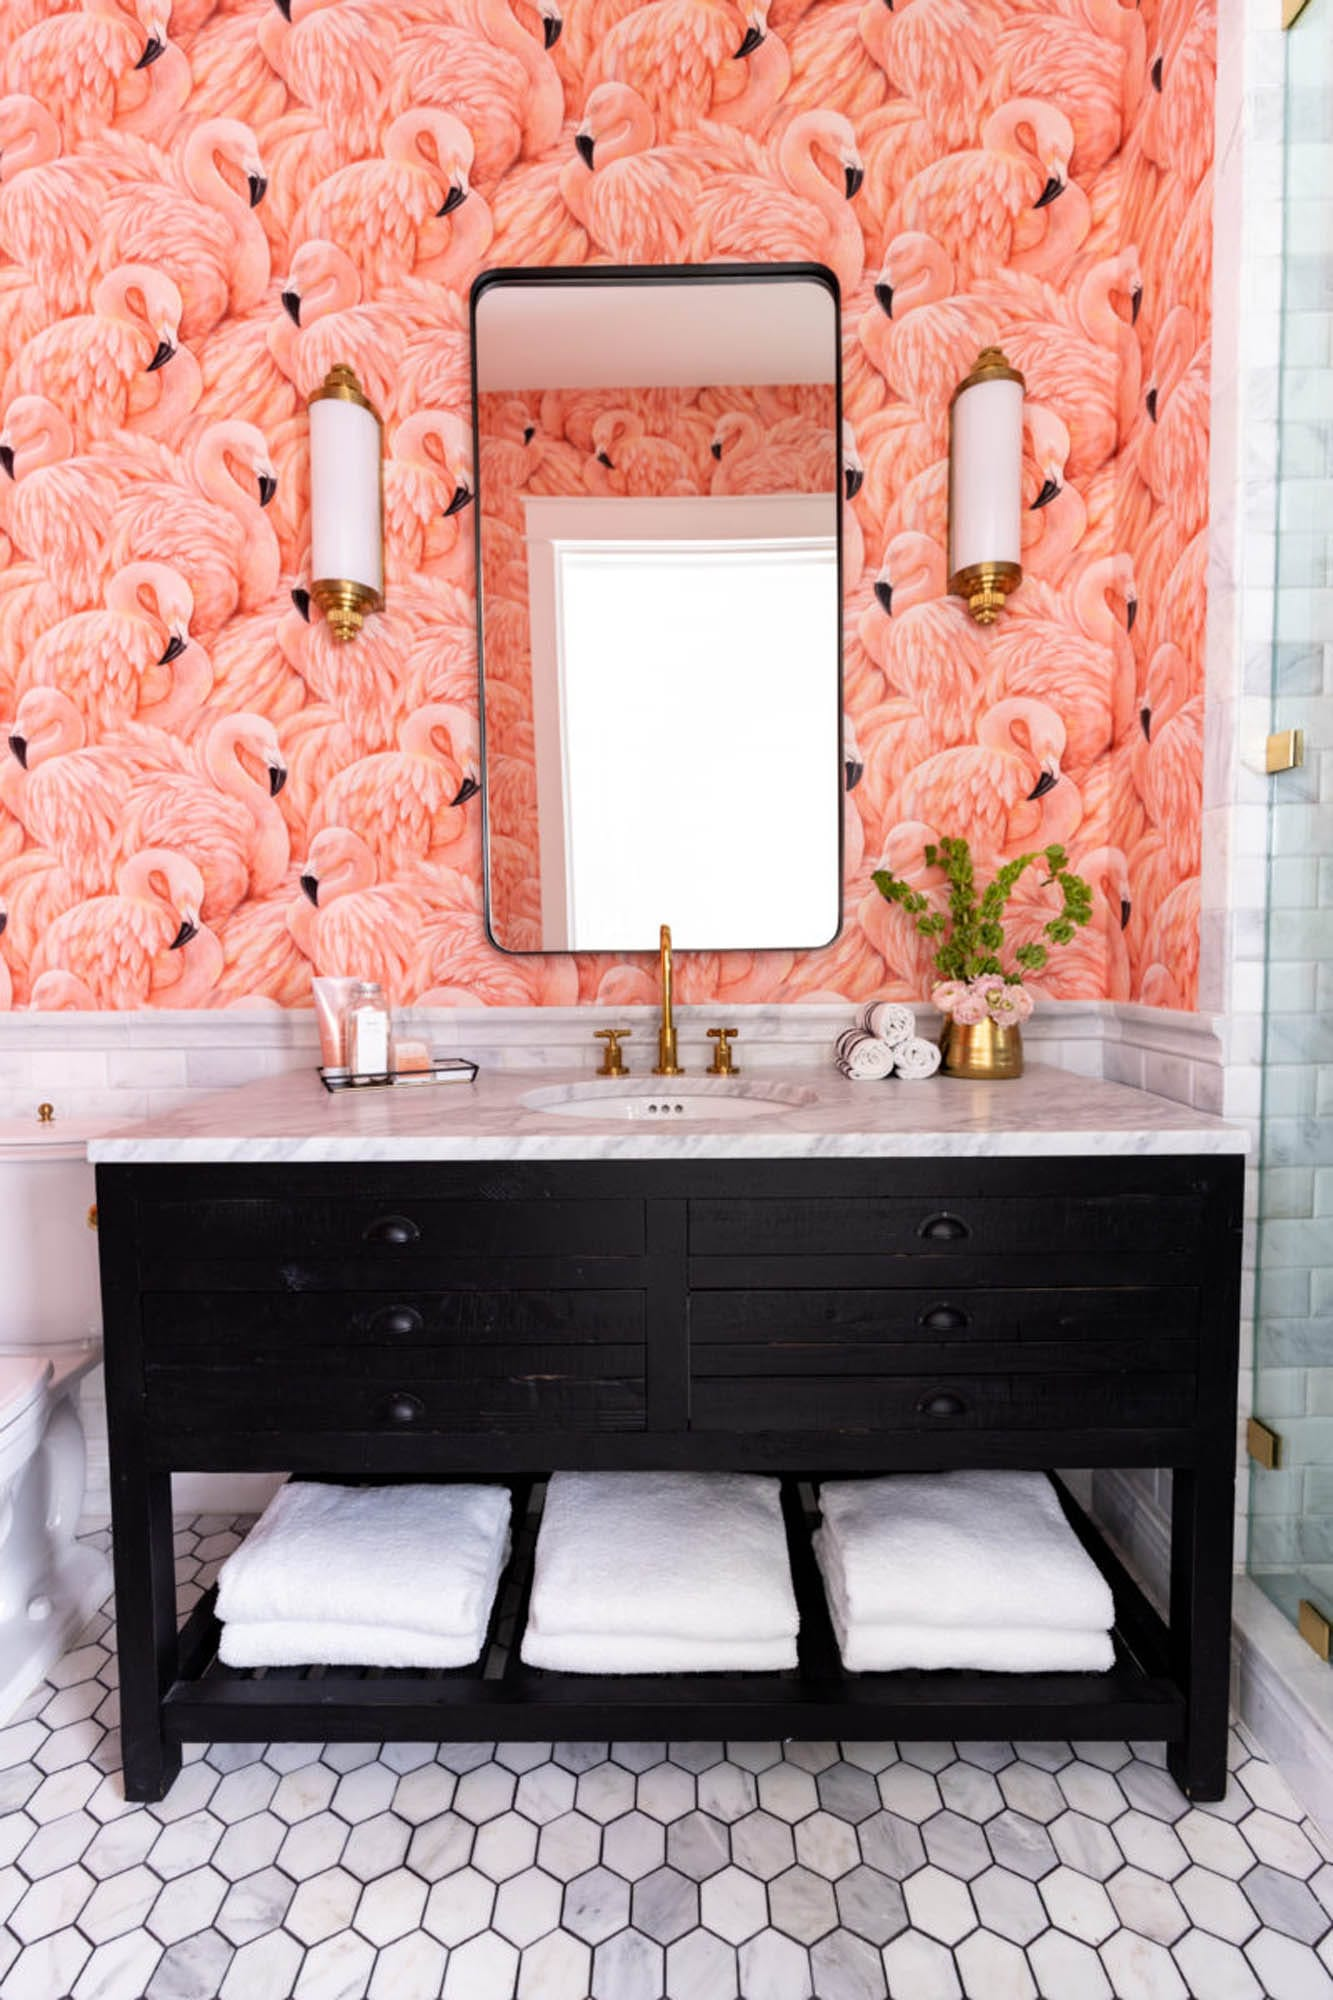 Flamingo wallpaper and white marble bathroom